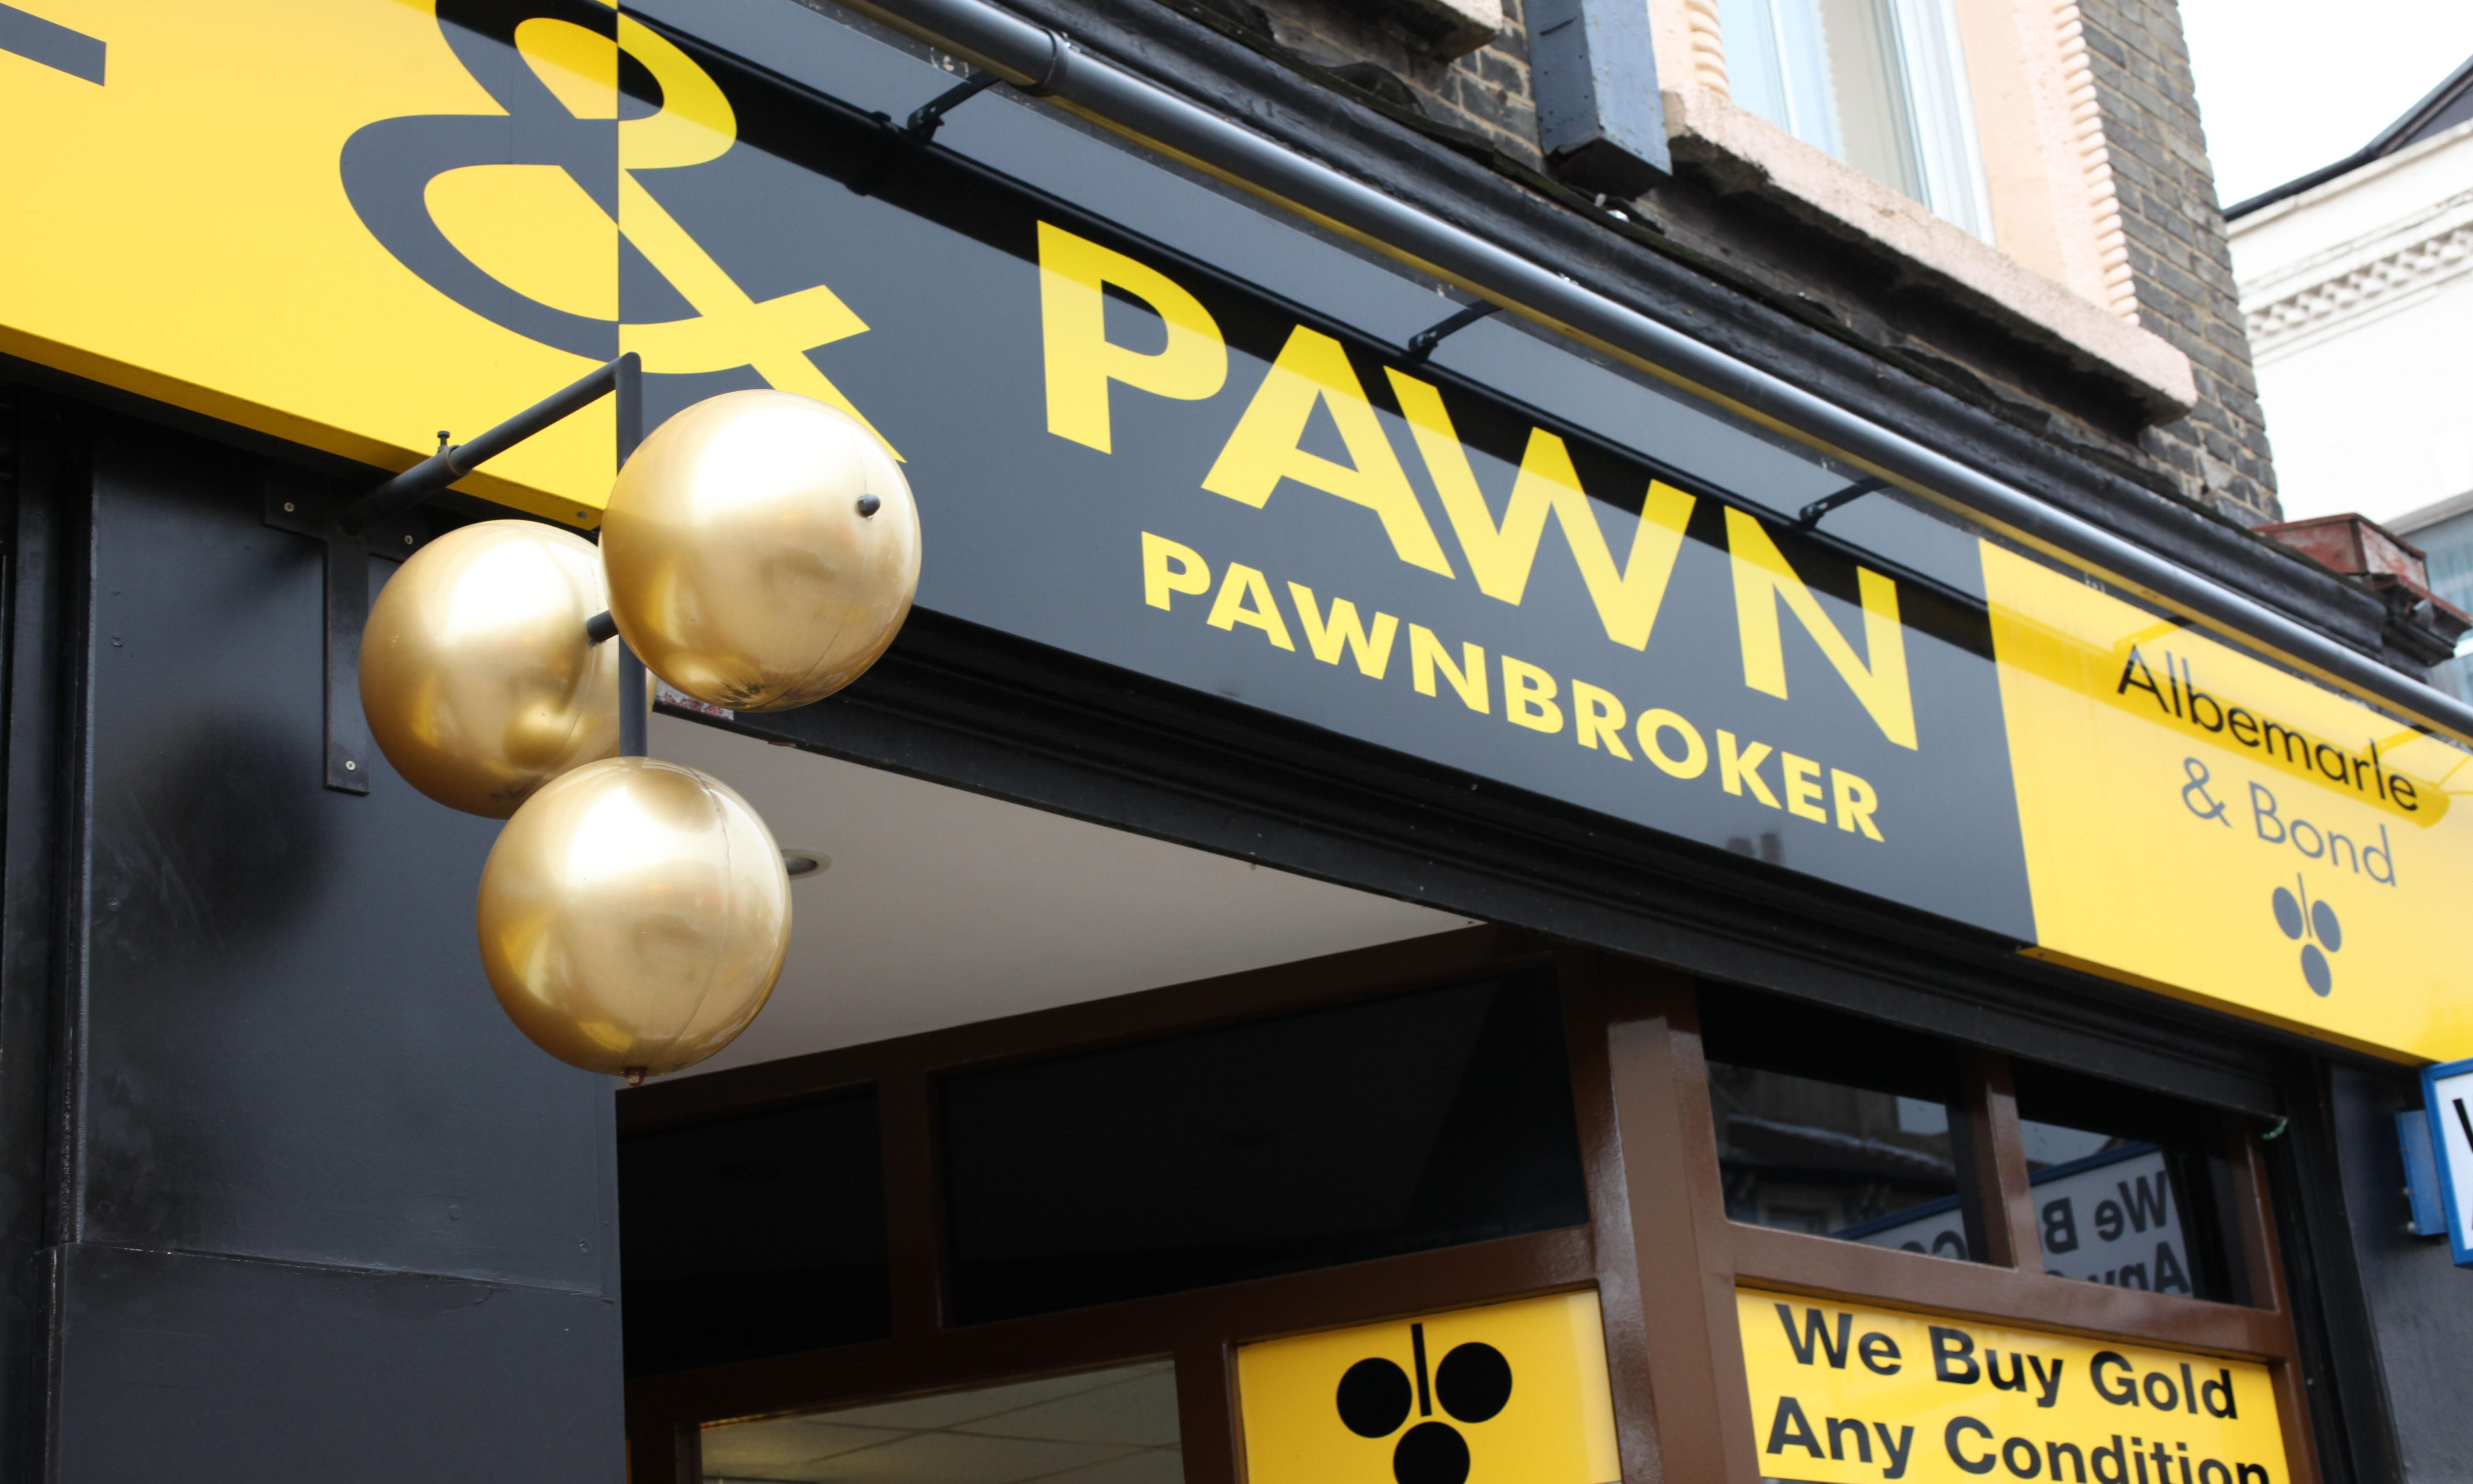 Have you been affected by the closure of pawnbroker Albemarle & Bond?